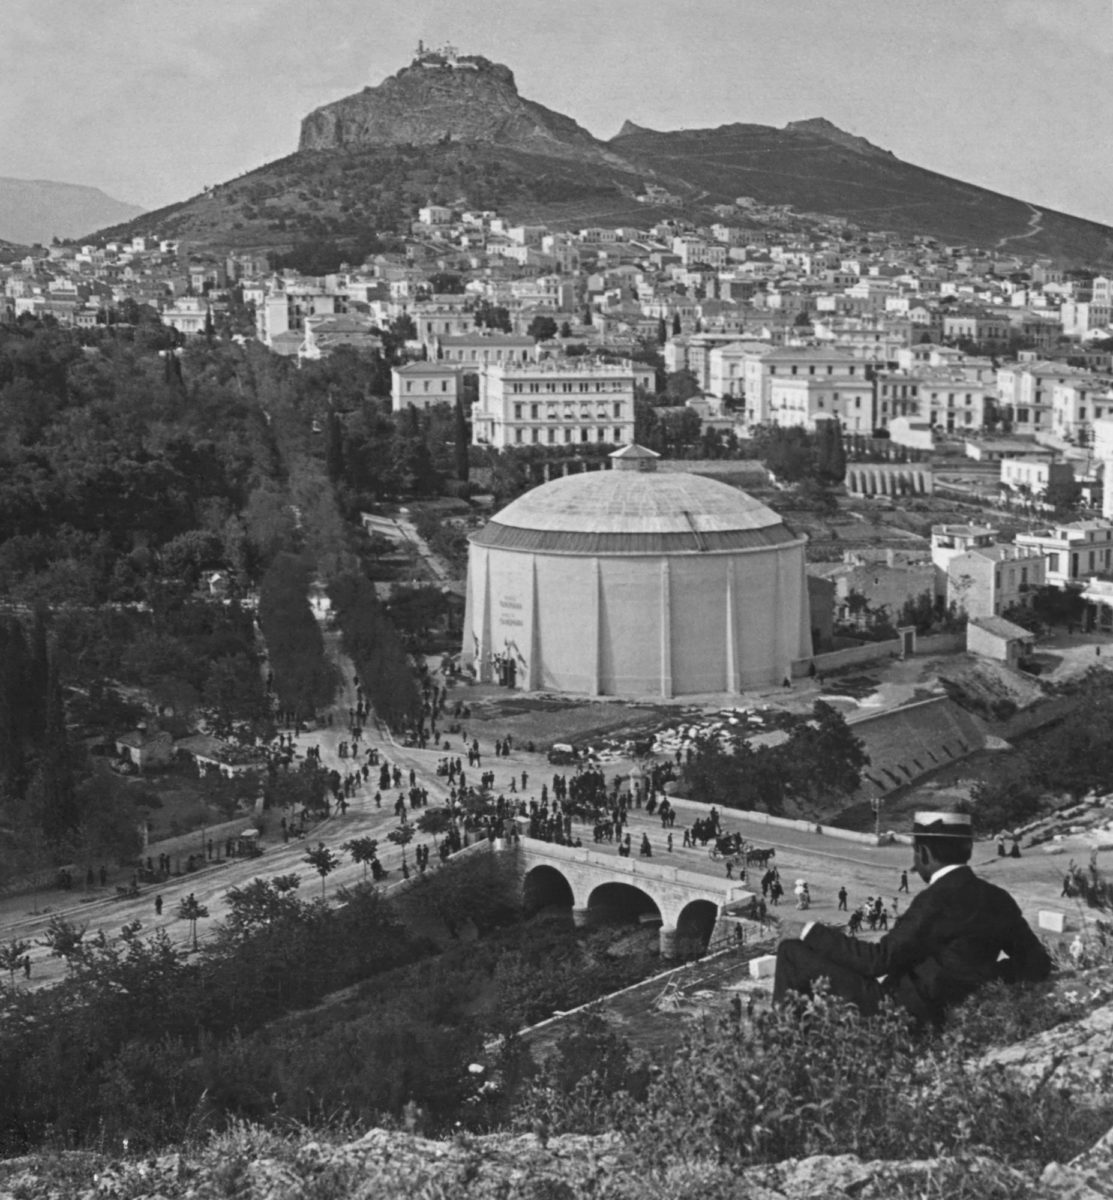 The Ilissos river, the bridge and the Thon's Panorama in the early 20th century. Photographer unknown. Courtesy of the Library of Congress